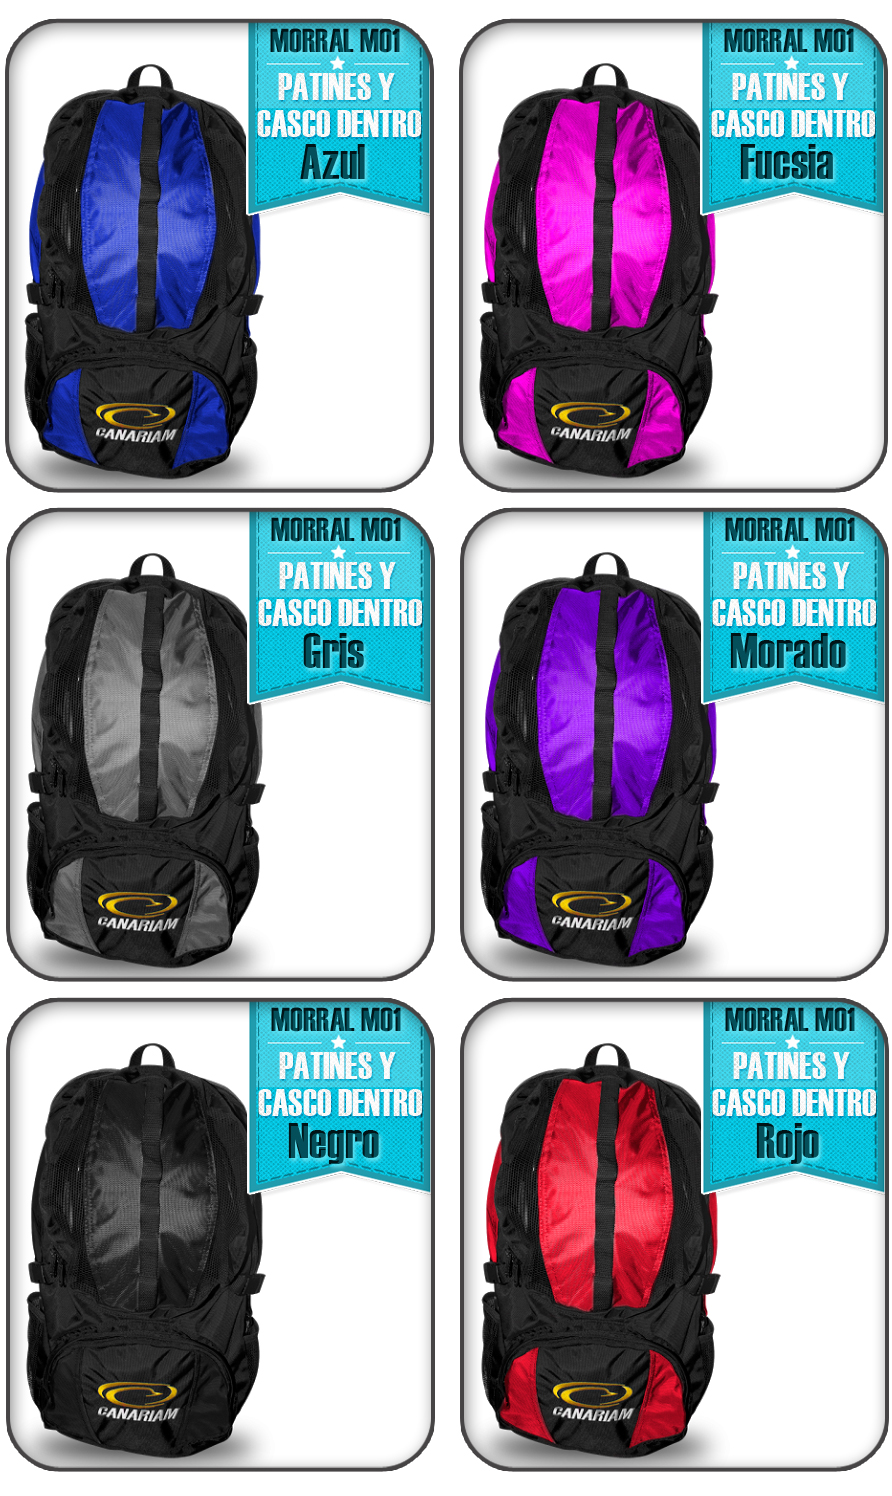 morral-M01,-Patines-y-casco